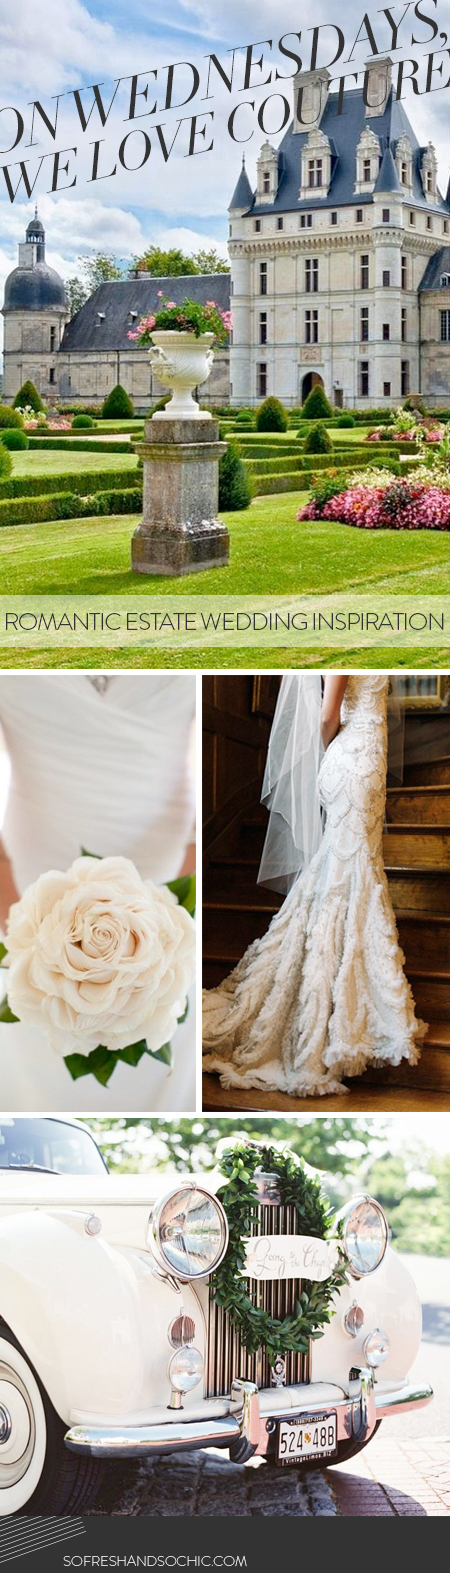 So Fresh and So Chic // Romantic Estate Wedding Inspiration